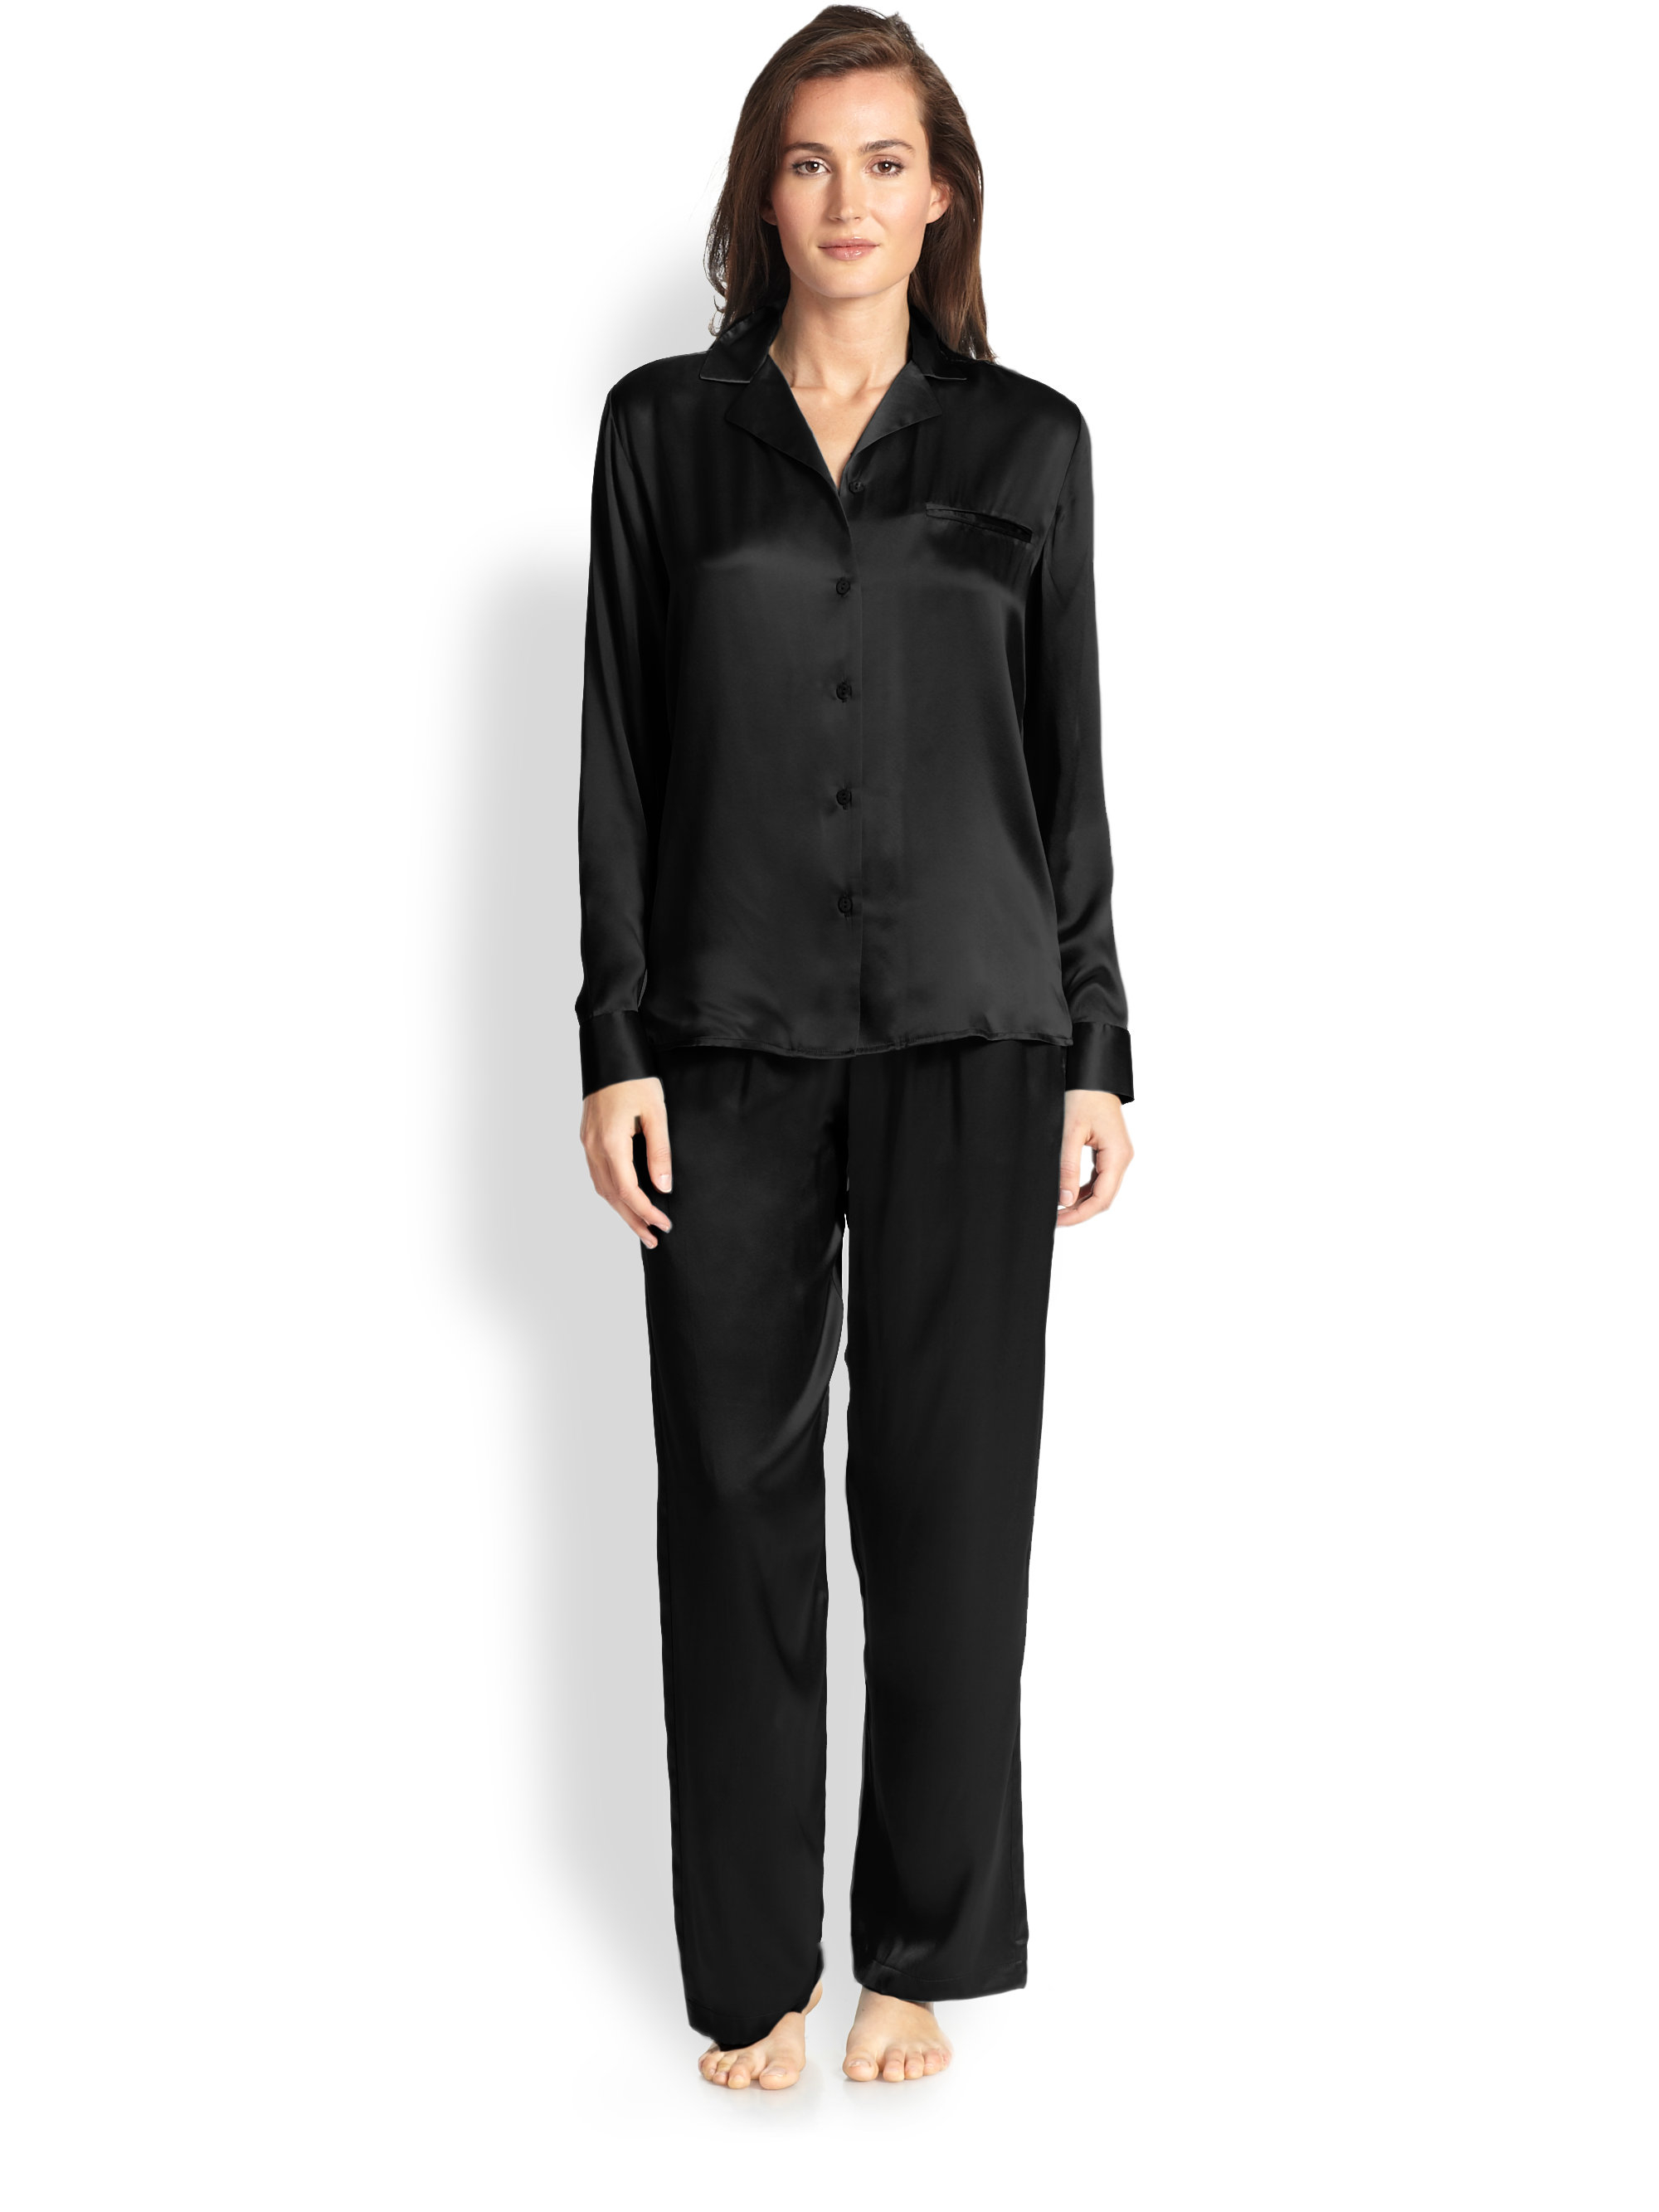 Staying in bed? That's the perfect time to wear your loudest, proudest Black Pajamas. Our extensive collection of Black Pajamas in a wide variety of styles allow you to wear your passion around the house.